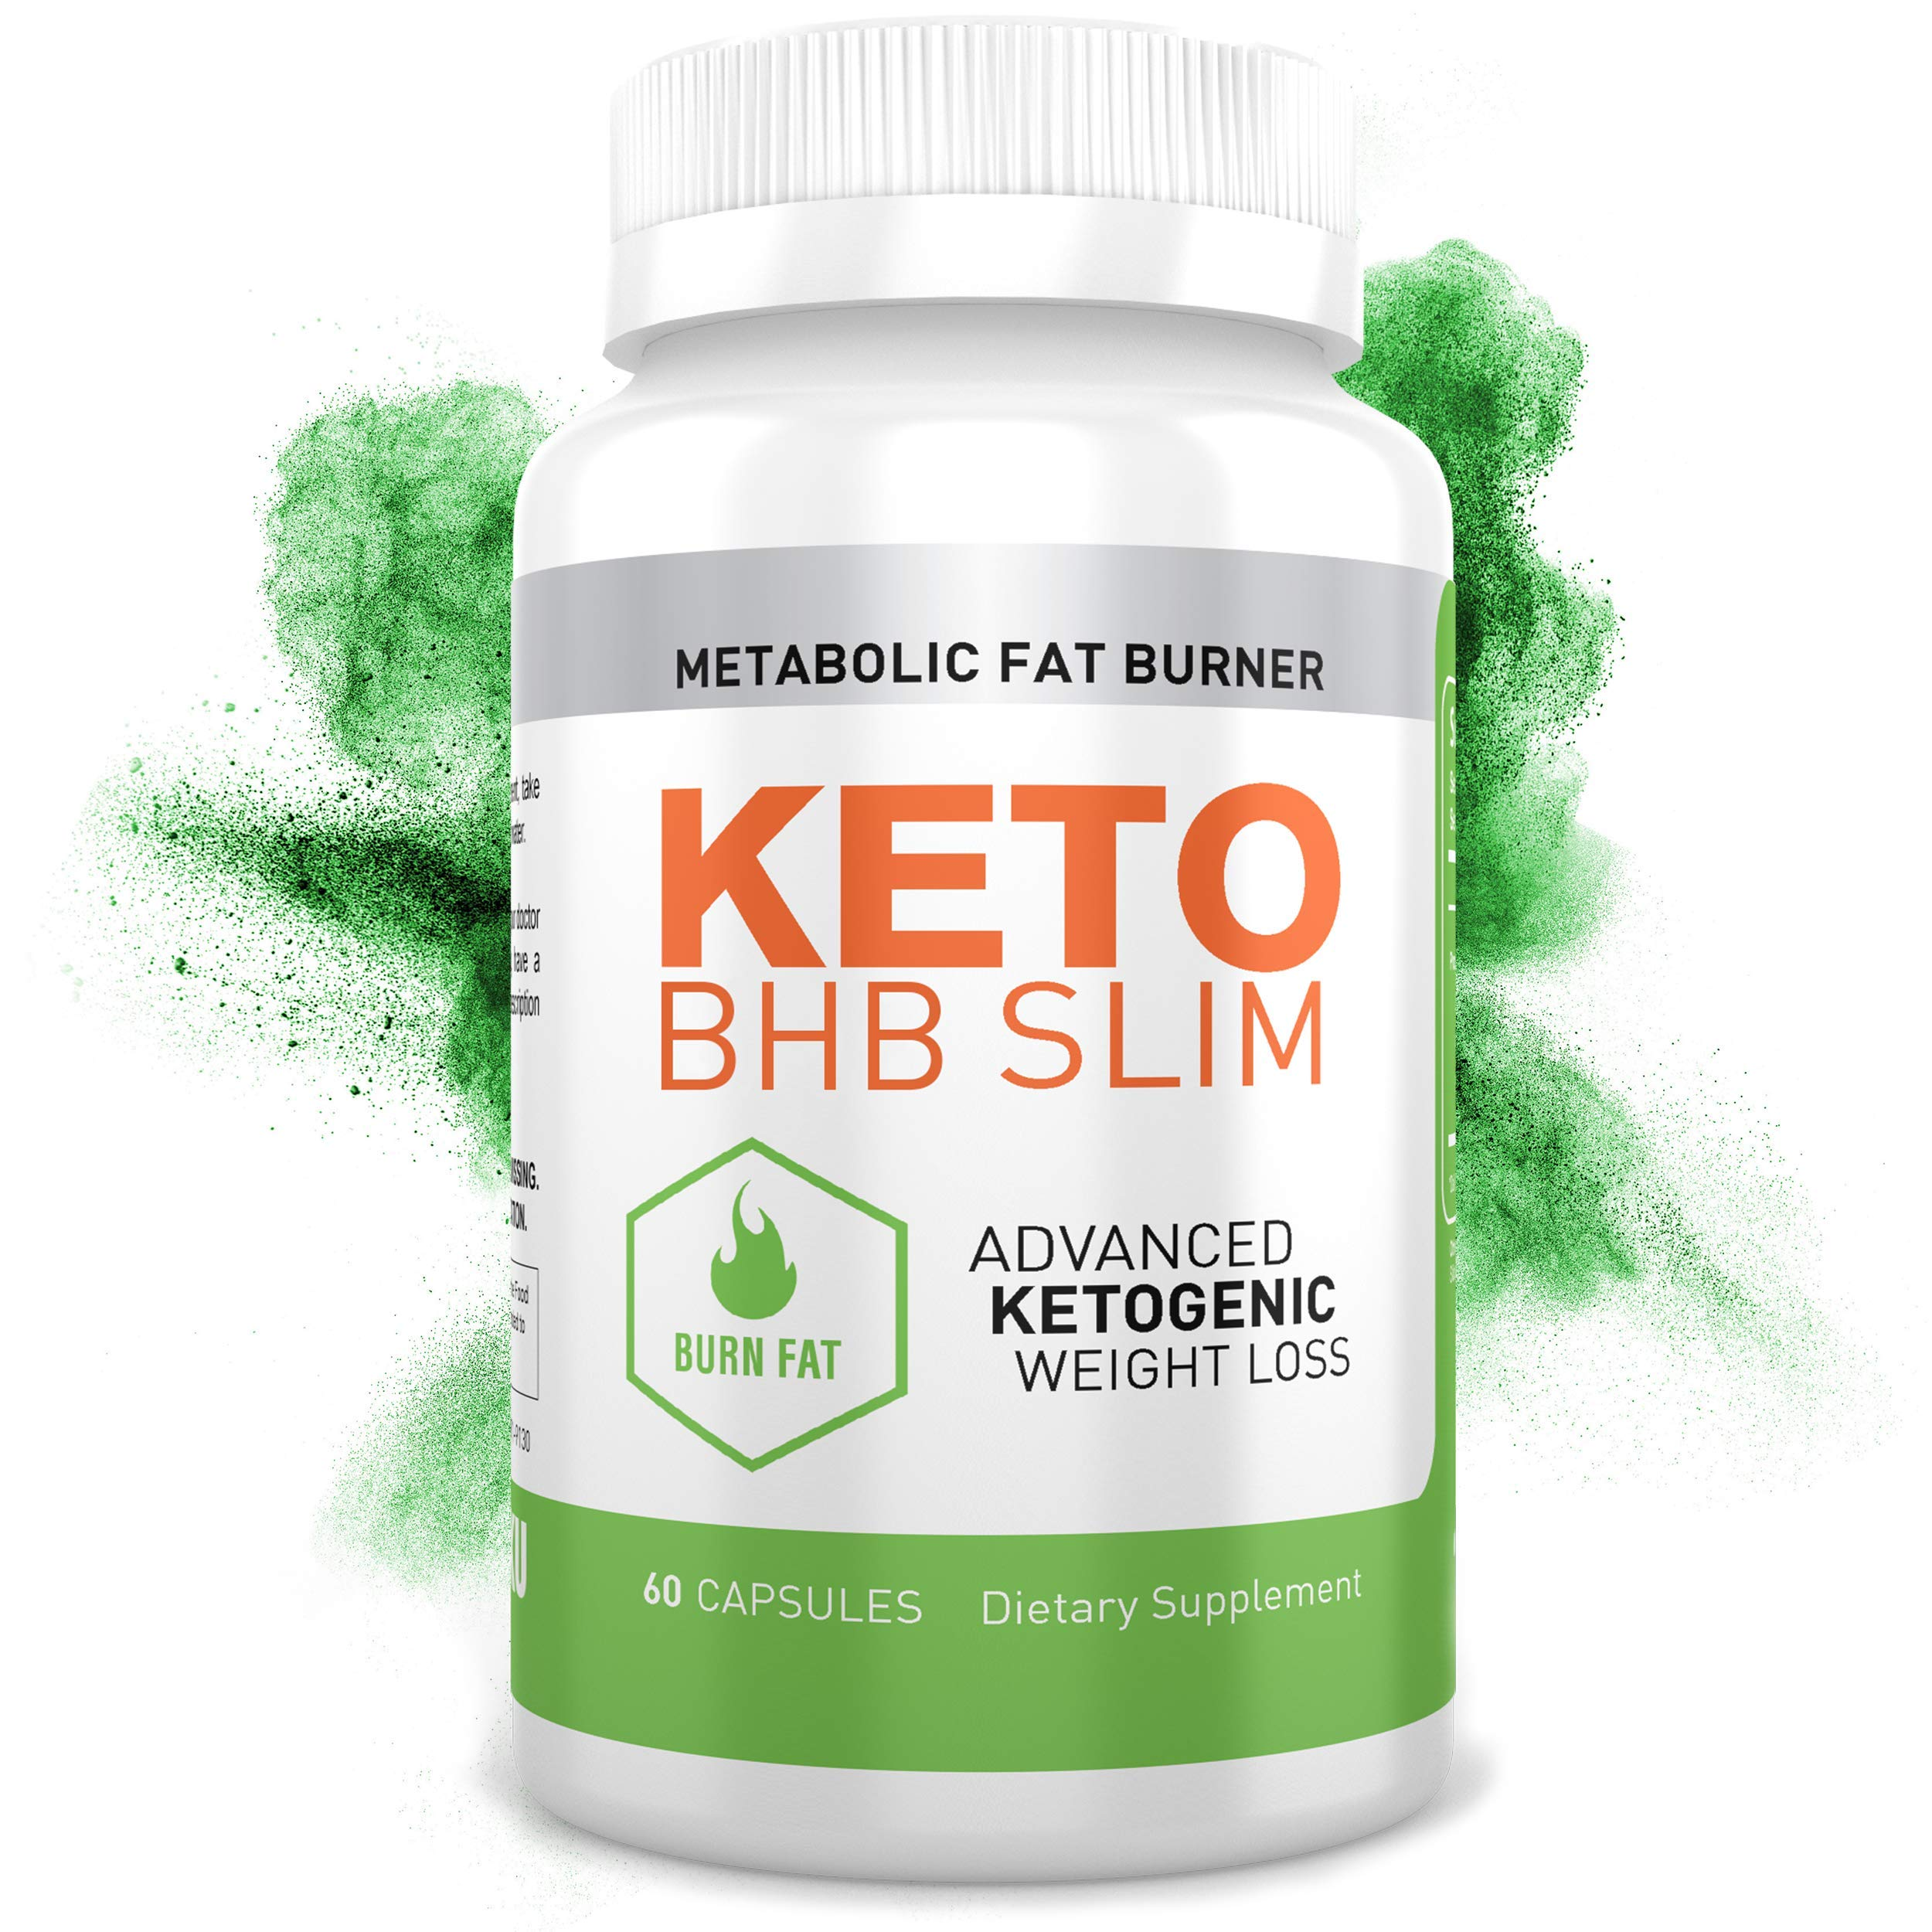 hotSKU Keto BHB Slim Diet Pills - Perfect Natural Supplement to Help Burn Fat with Ketosis - Boost Metabolism and Energy - Best Keto Supplements for Women and Men - 60 Capsules - Made in USA by hotSKU